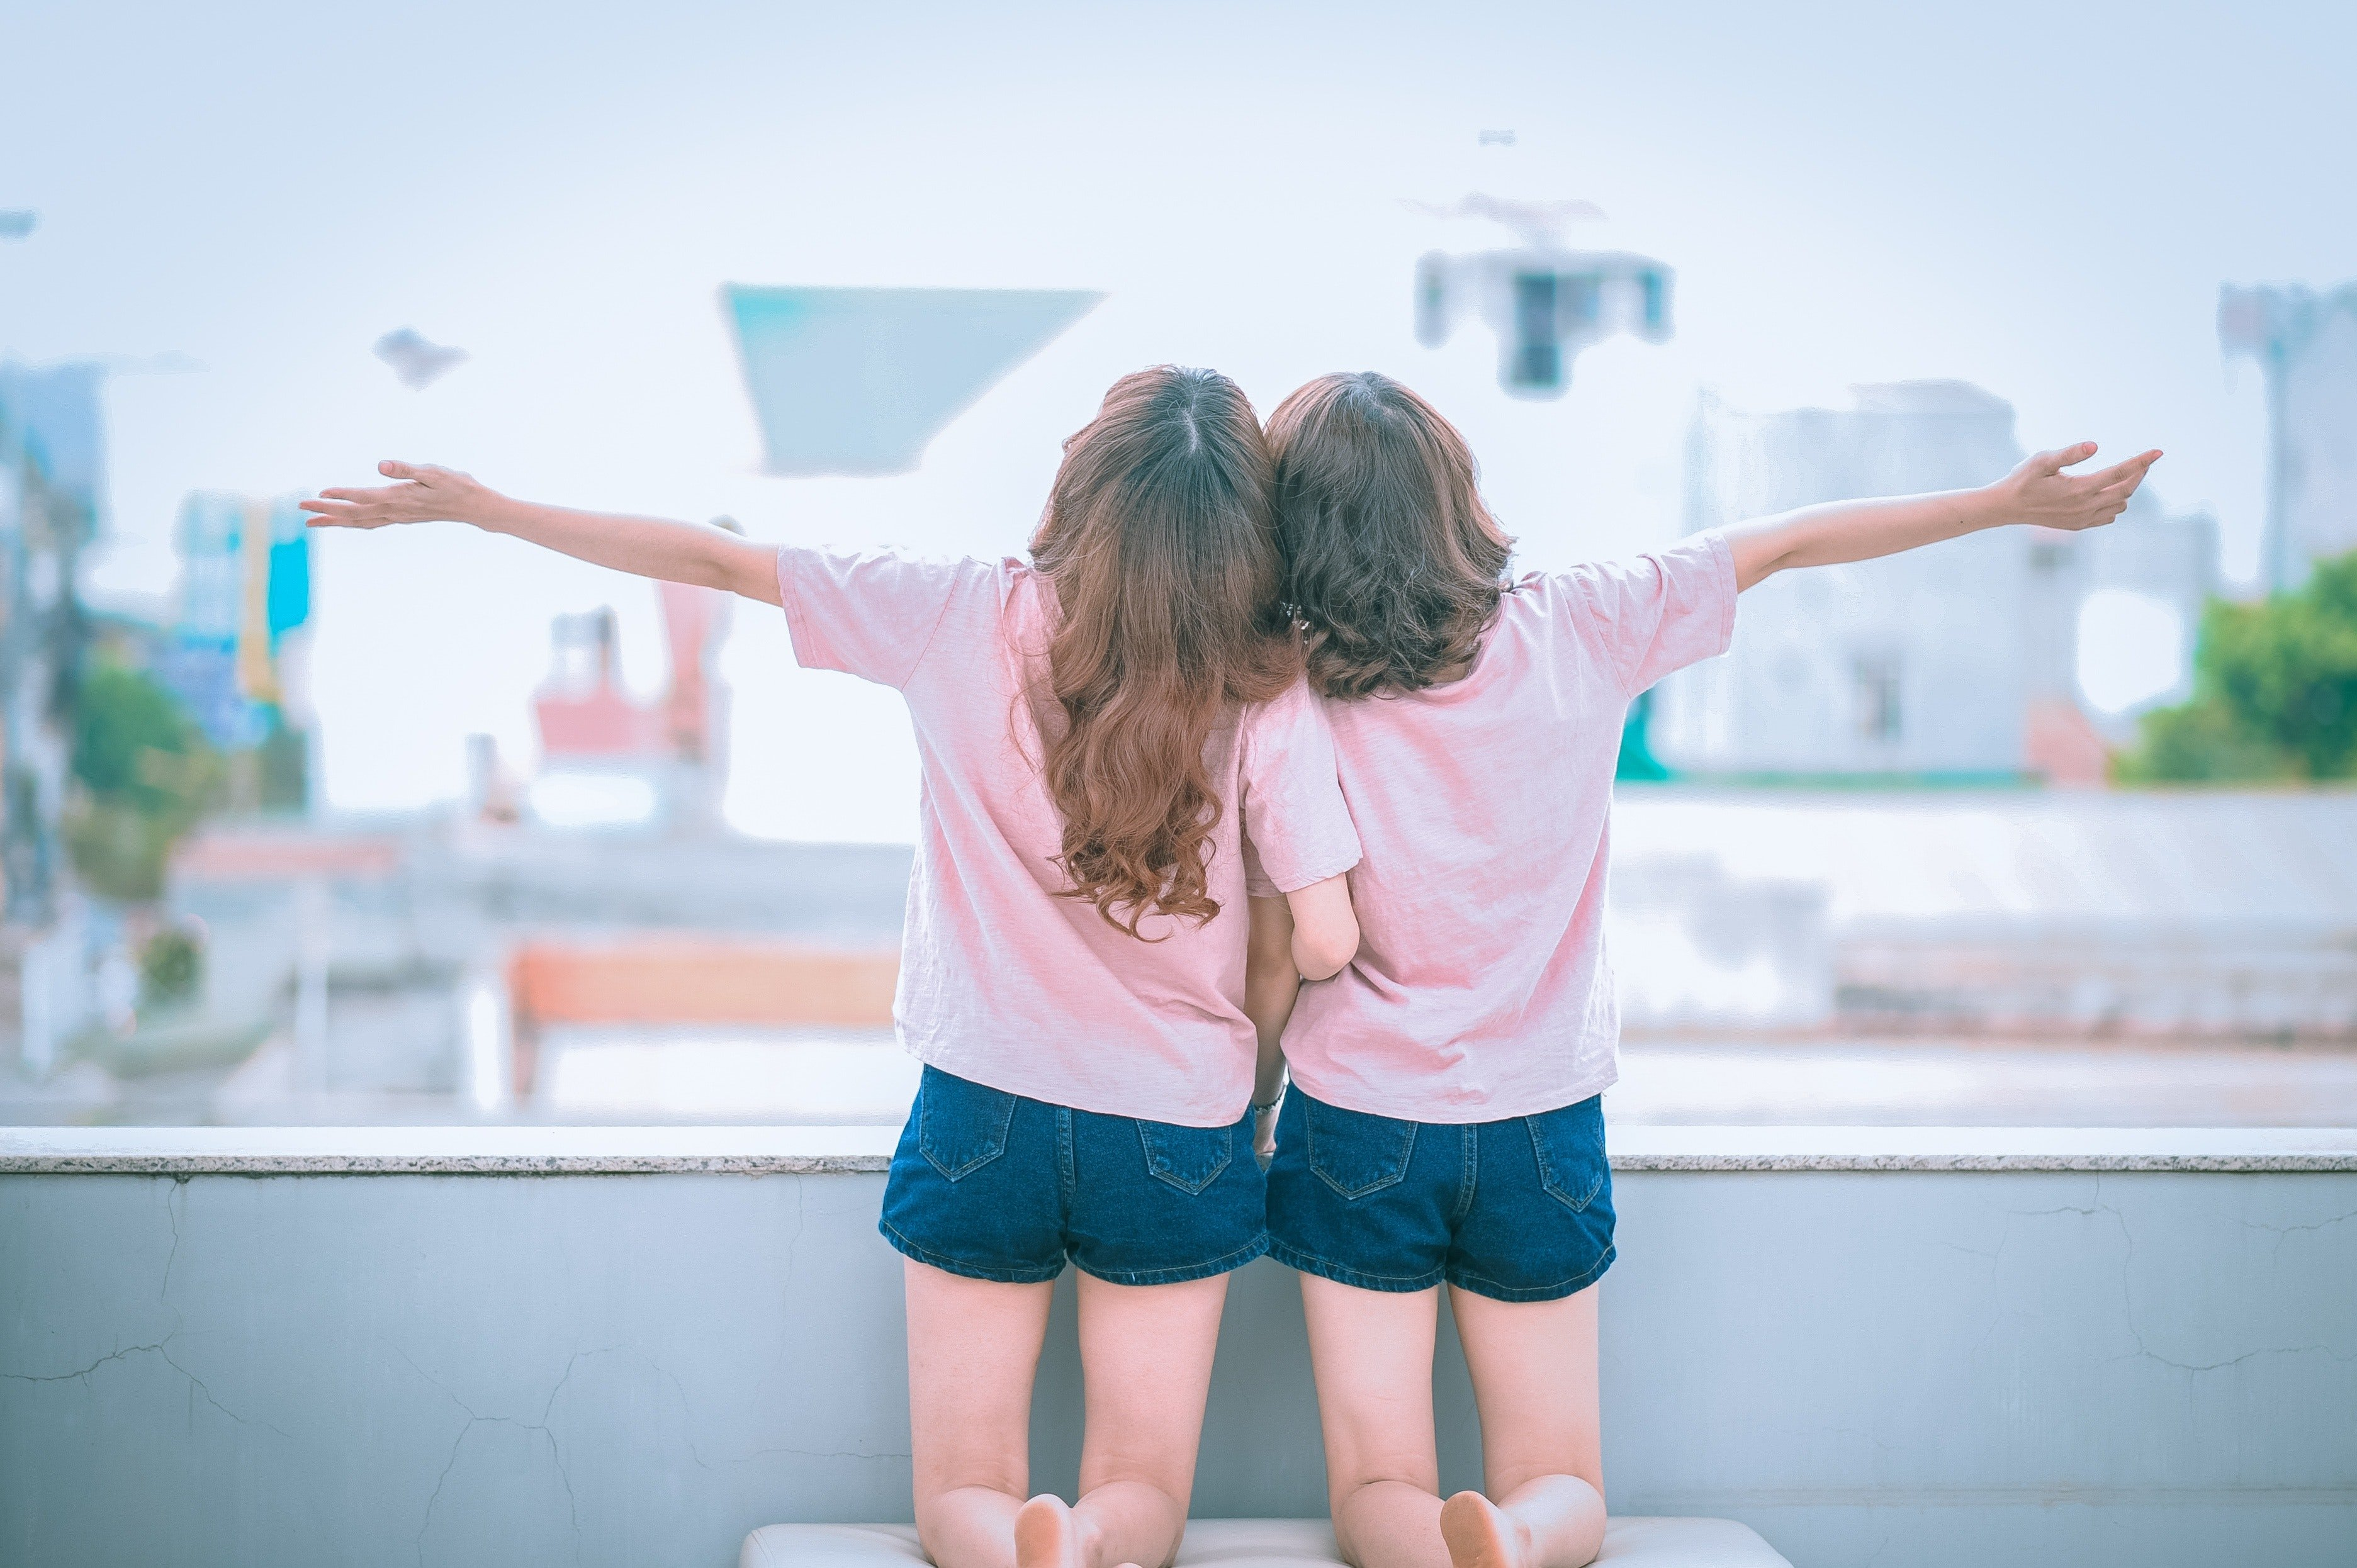 An image of young twin girls   Photo: Pexels